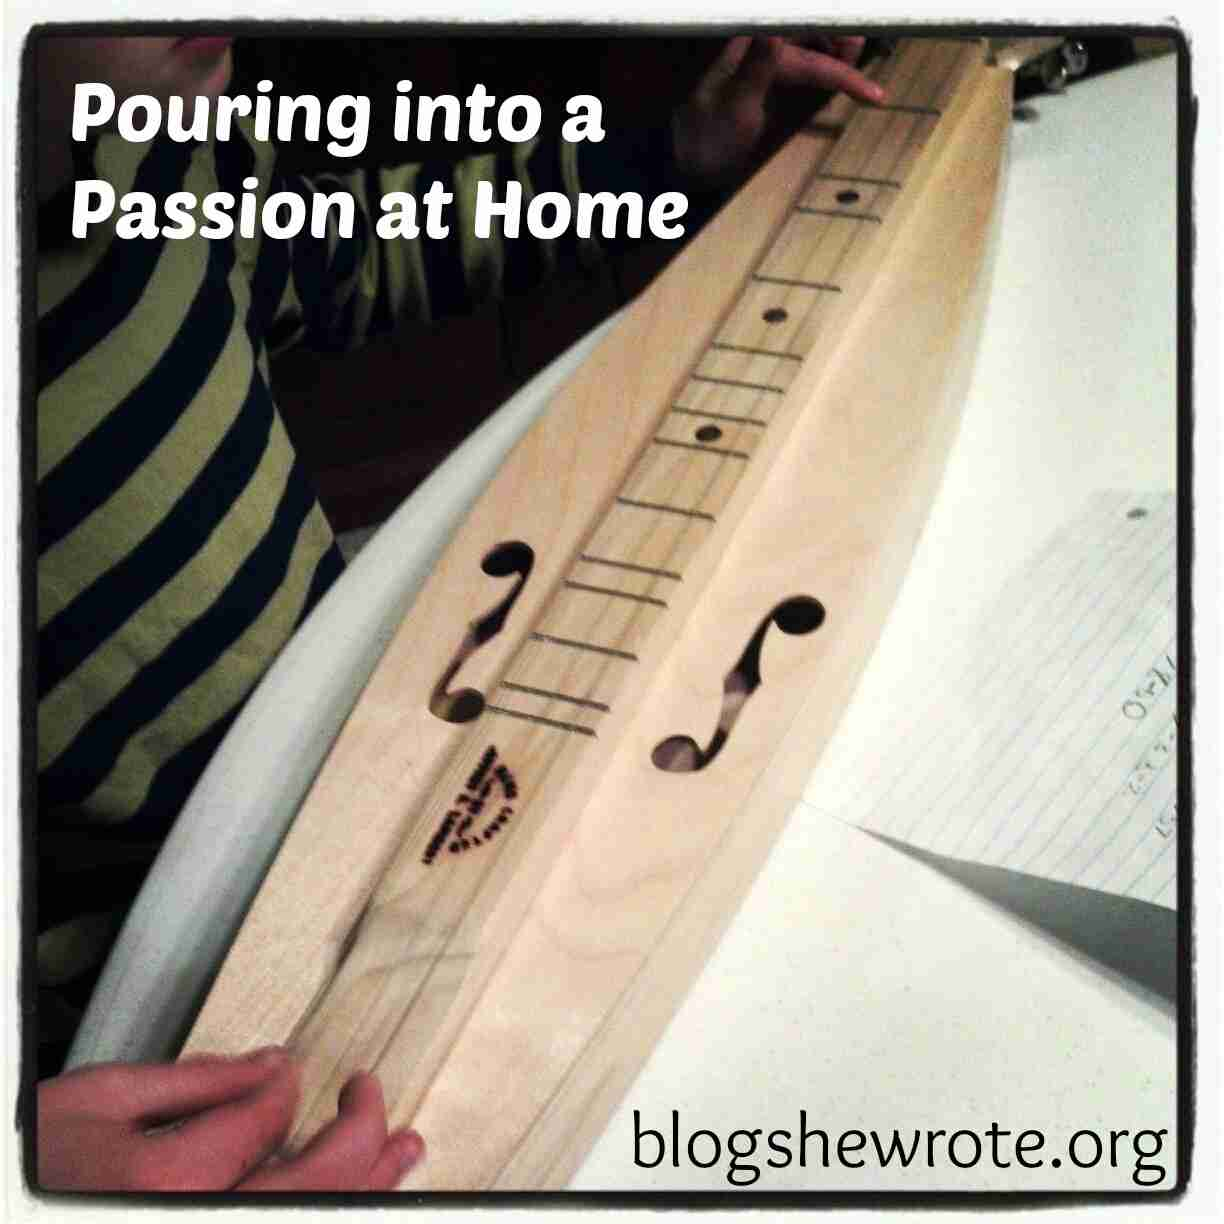 Blog She Wrote: Pouring into a Passion at Home